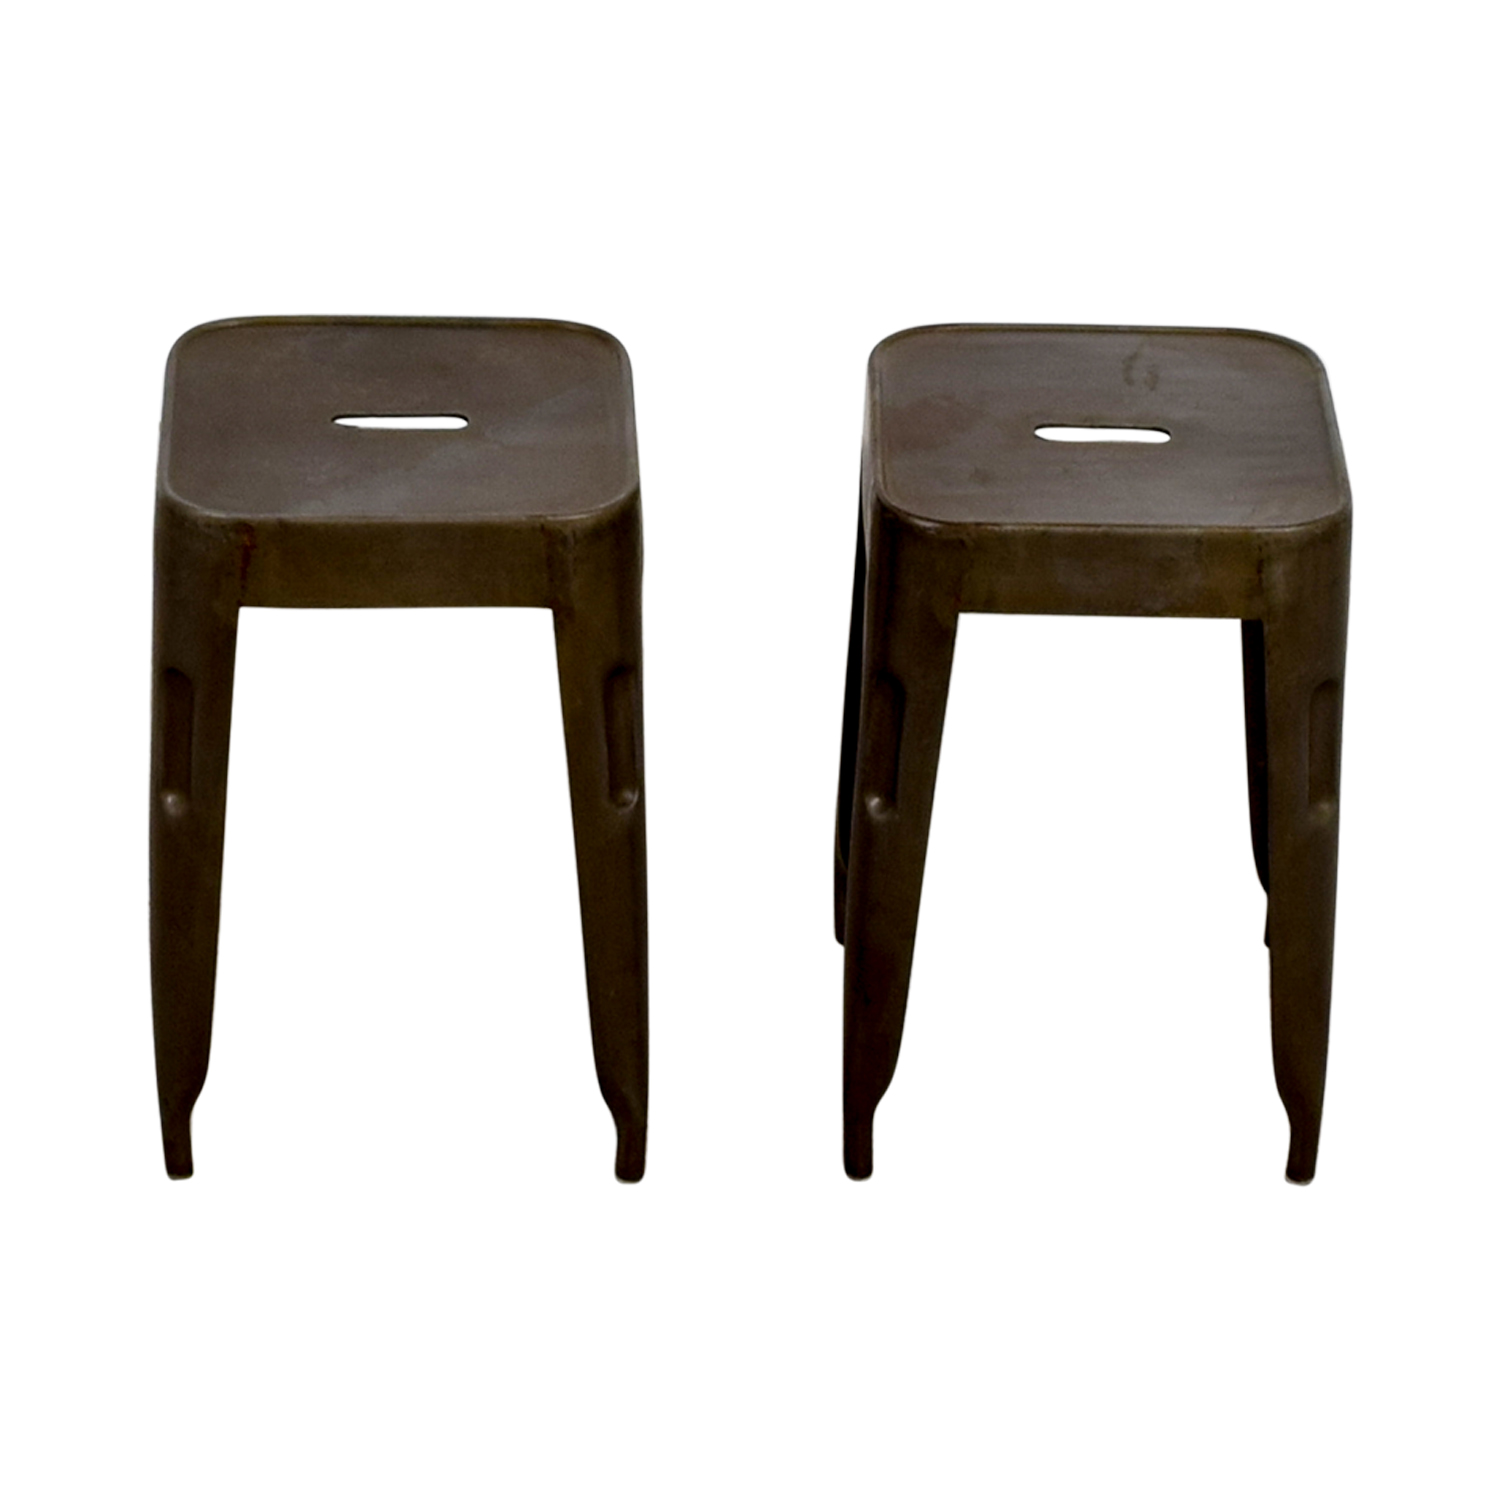 Industrial Brass Nickle Stools nj